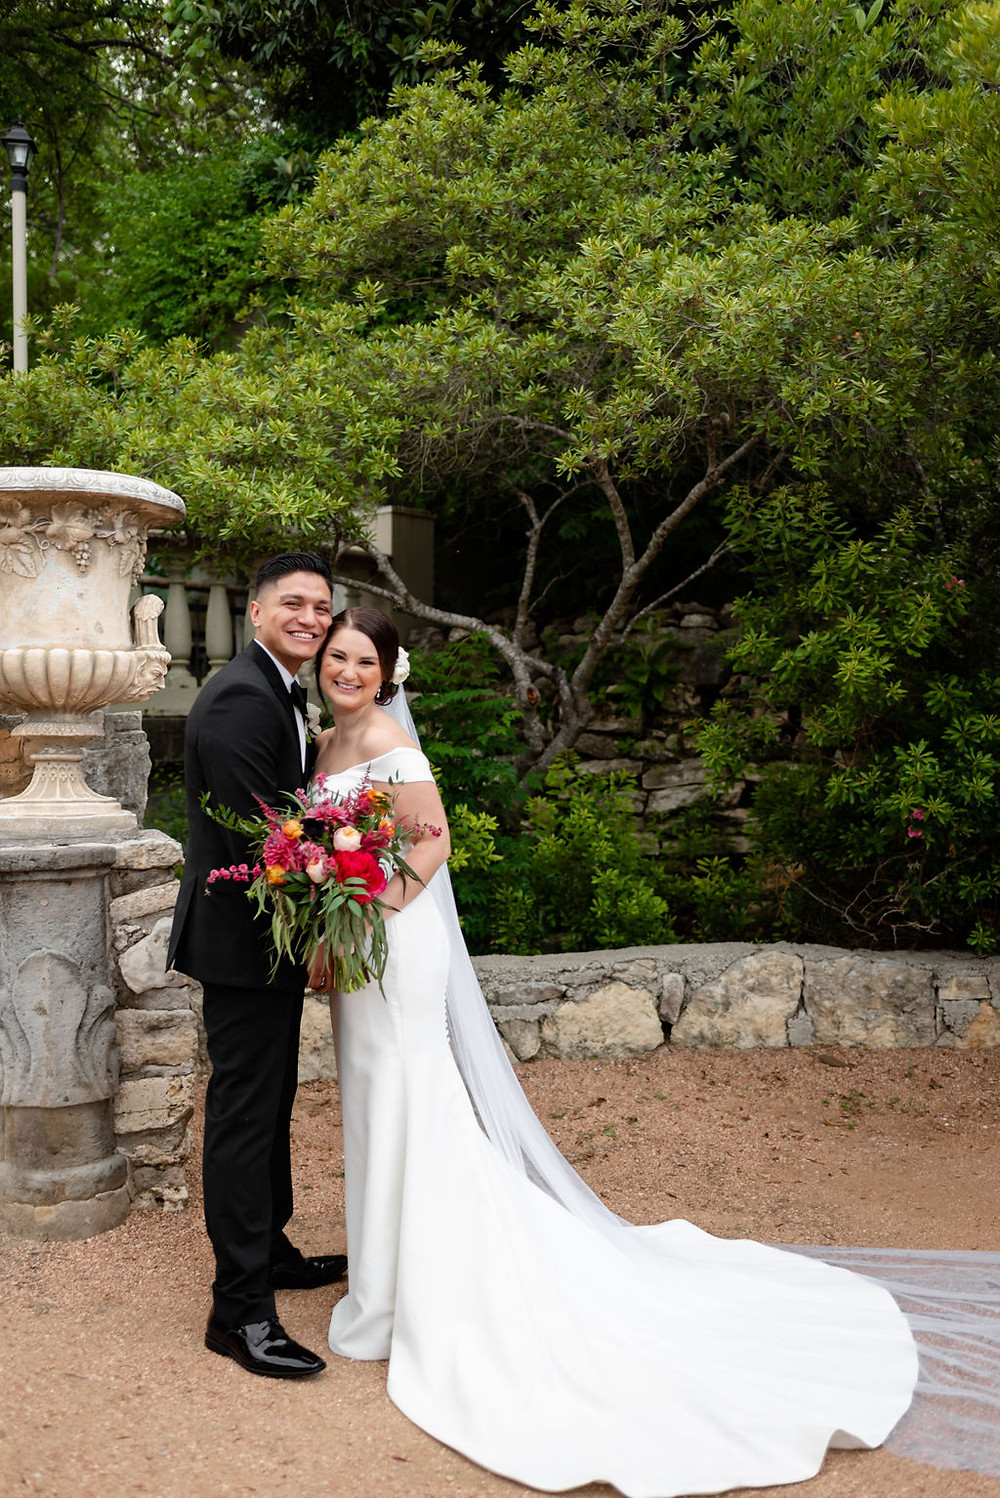 bride and groom pose in butterfly garden at villa antonia